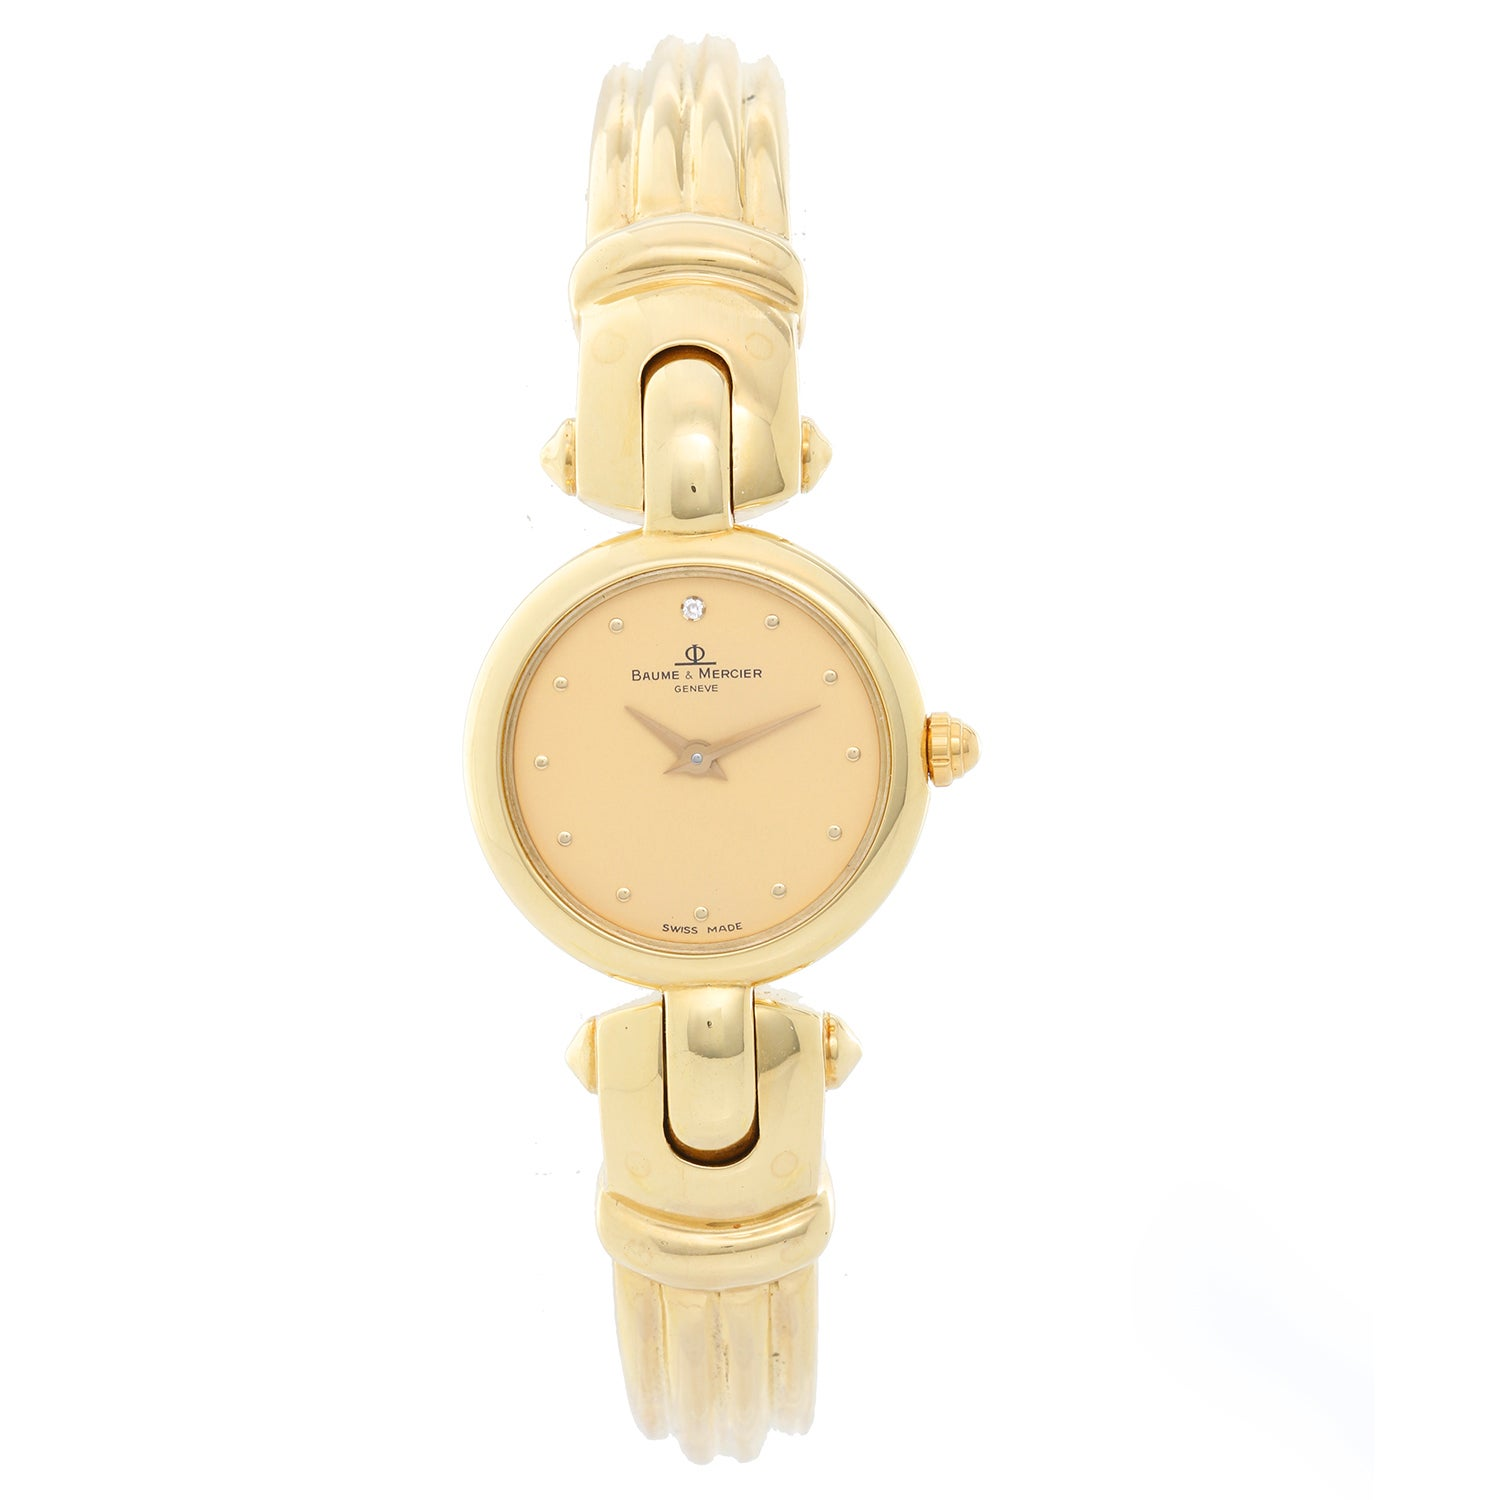 ca3657e399b Baume and Mercier Ladies Yellow Gold Vintage Quartz Wristwatch at 1stdibs